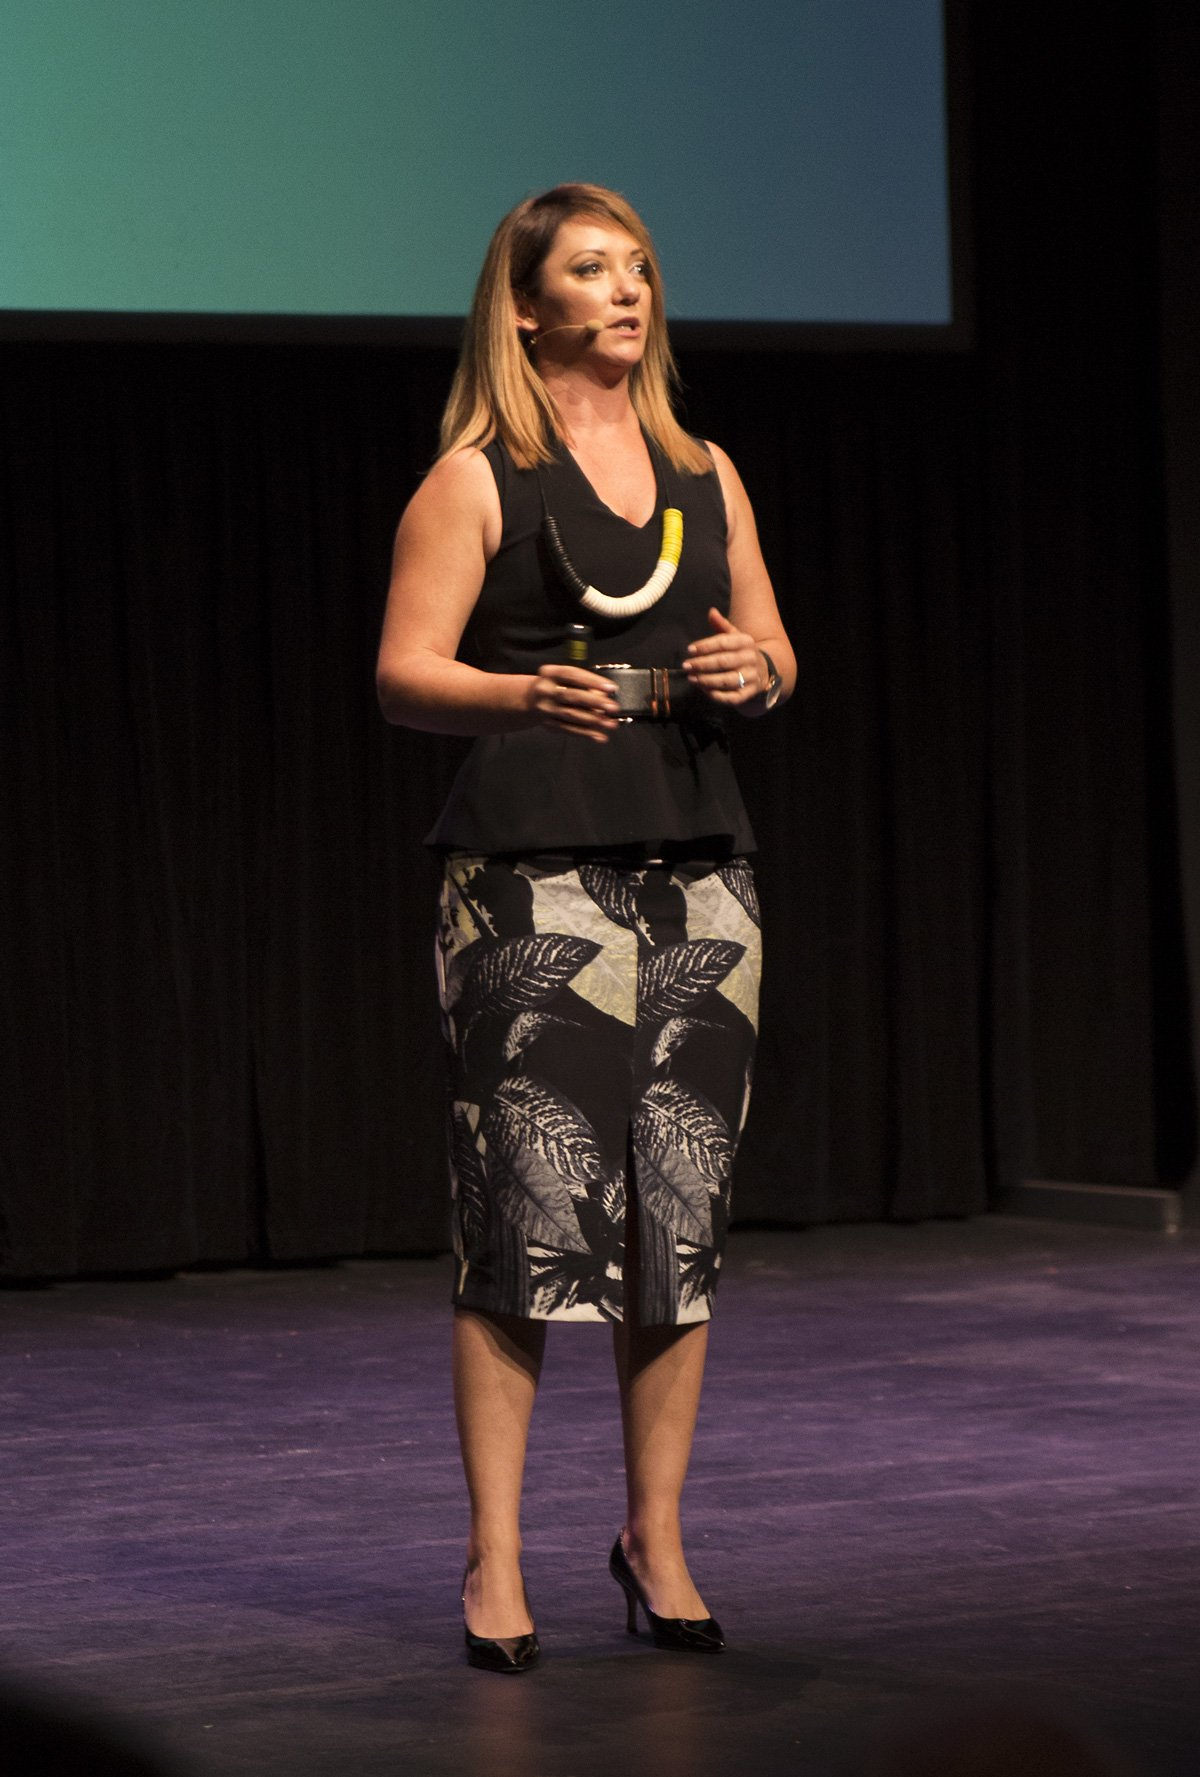 Amanda Stevens at Upside Live Melbourne 2015